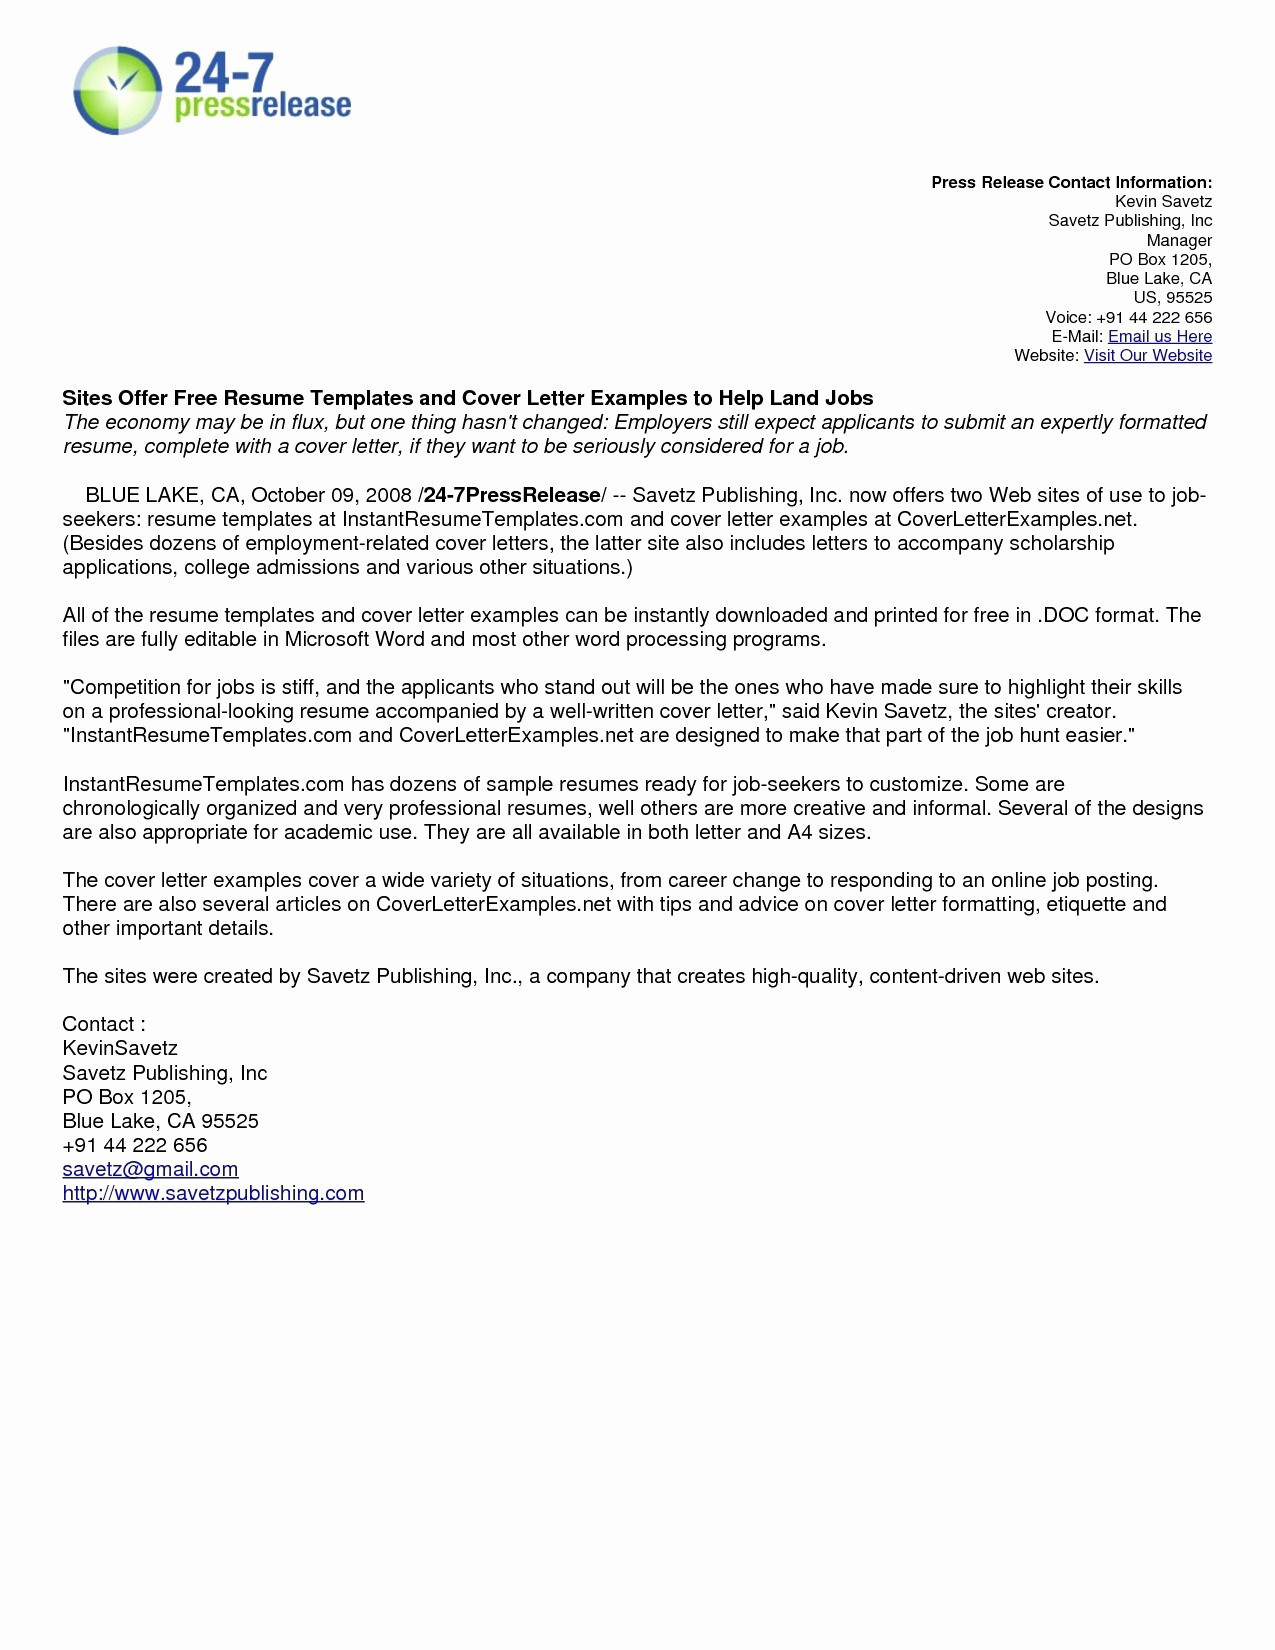 Business Letter Template Via Email - Free Resume Writing Inspirational Free Resume Examples Fresh